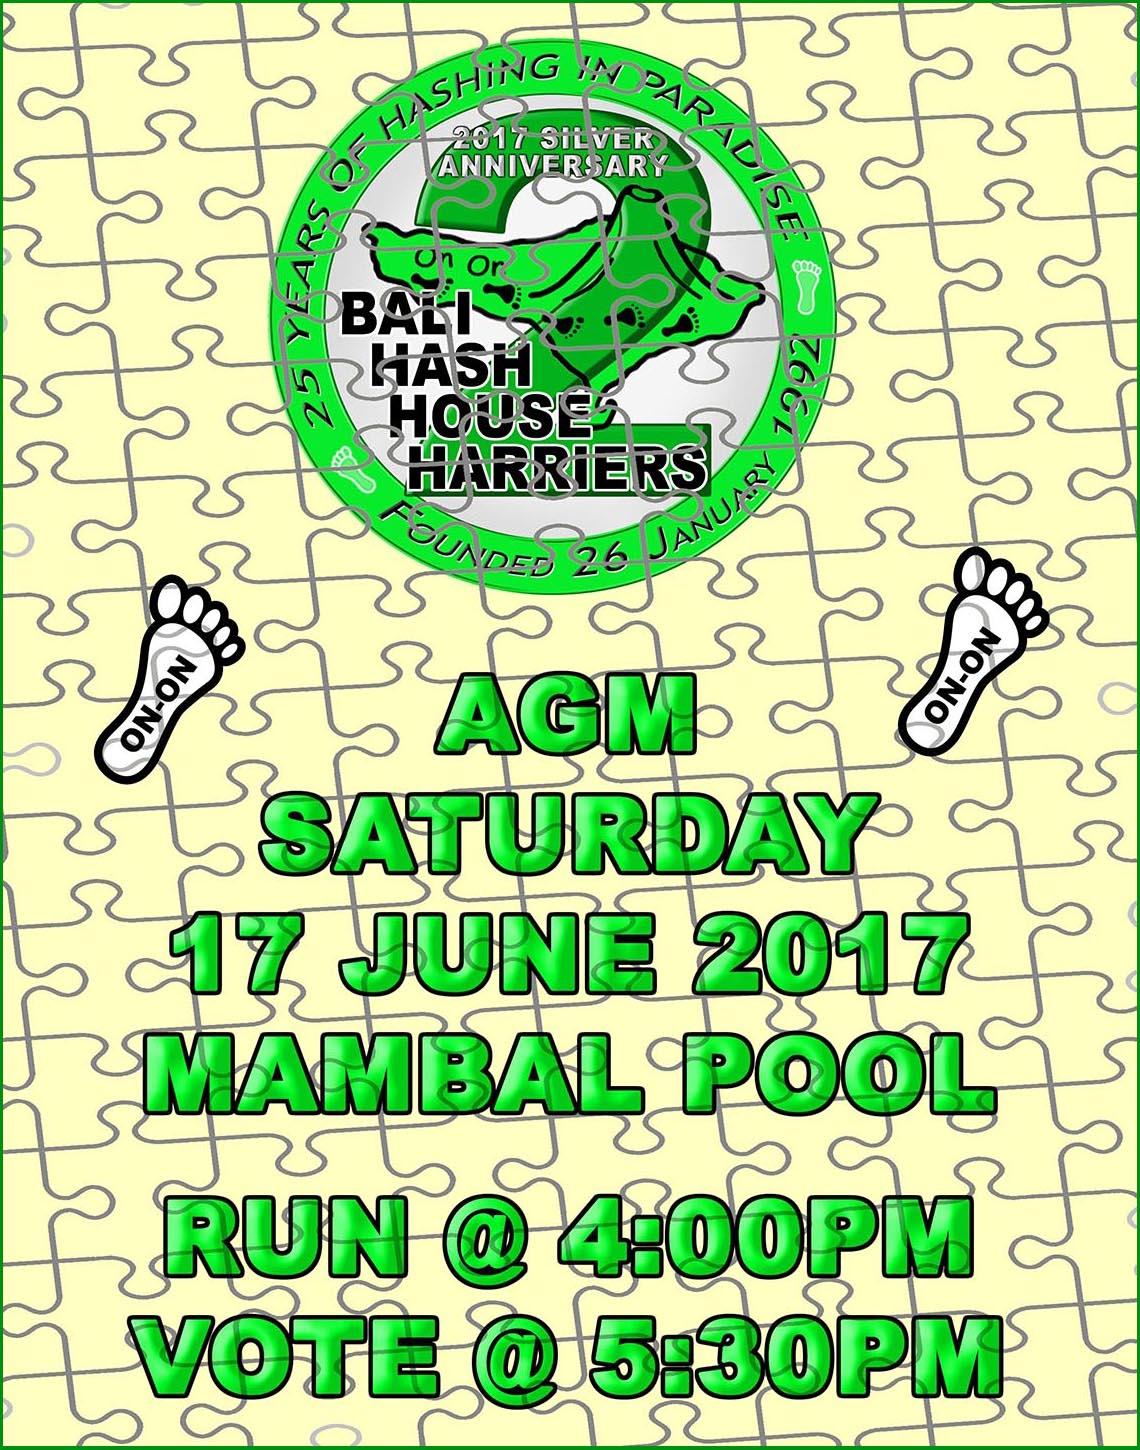 AGM Run 17 June Mambal Swimming Pool